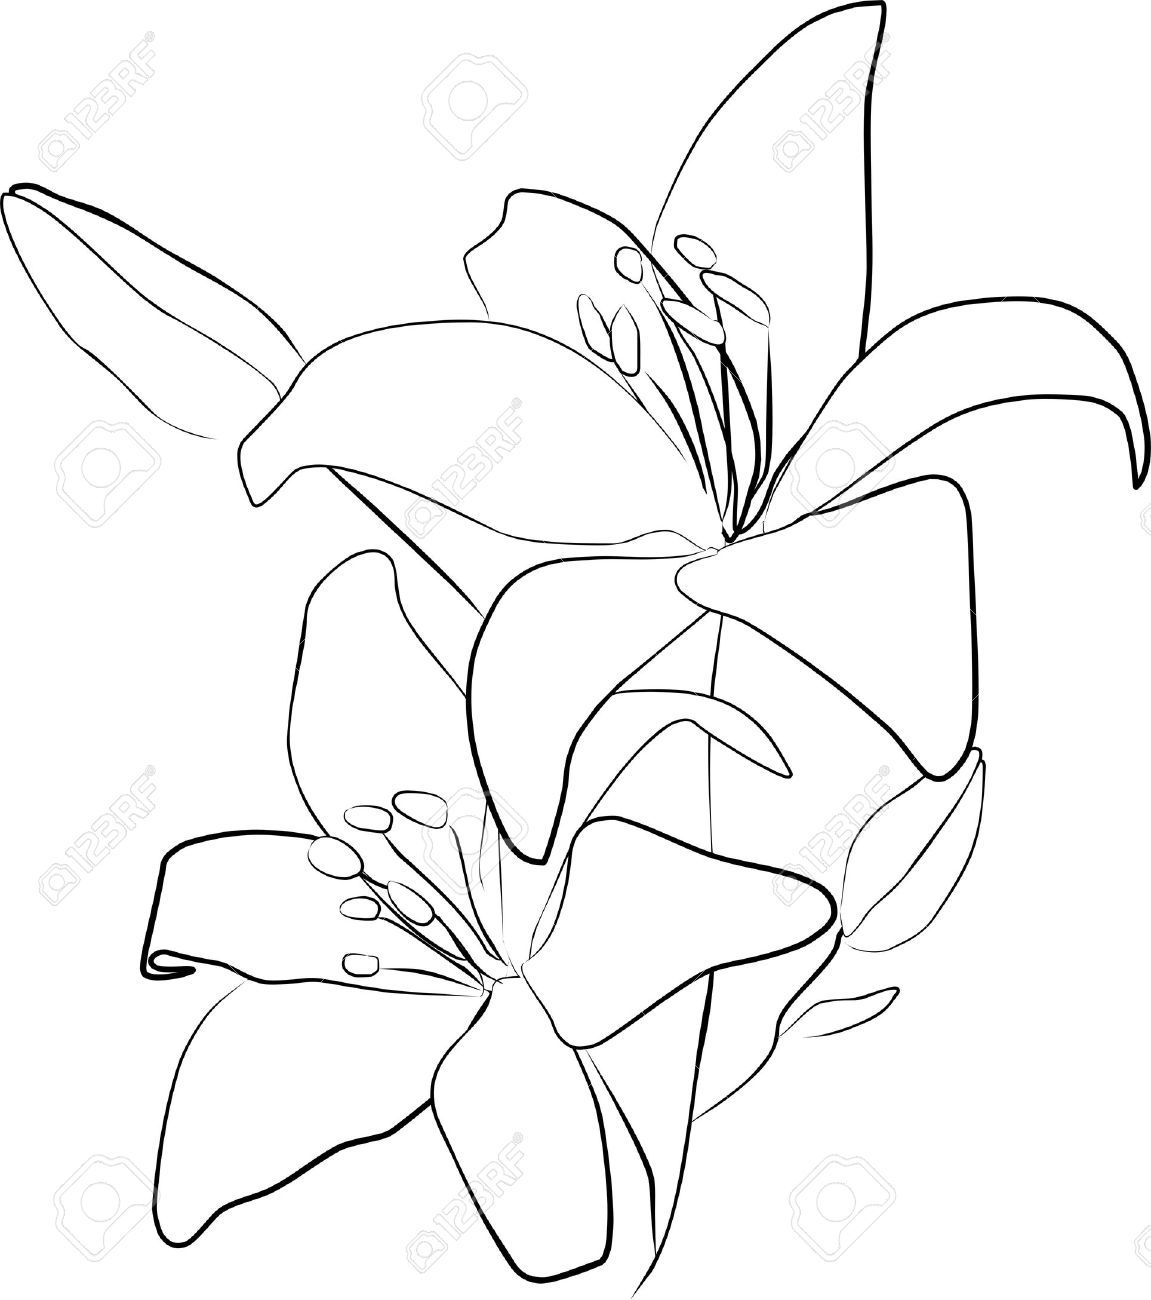 Line Drawing Lily : Calla lily drawing outline imgkid the image